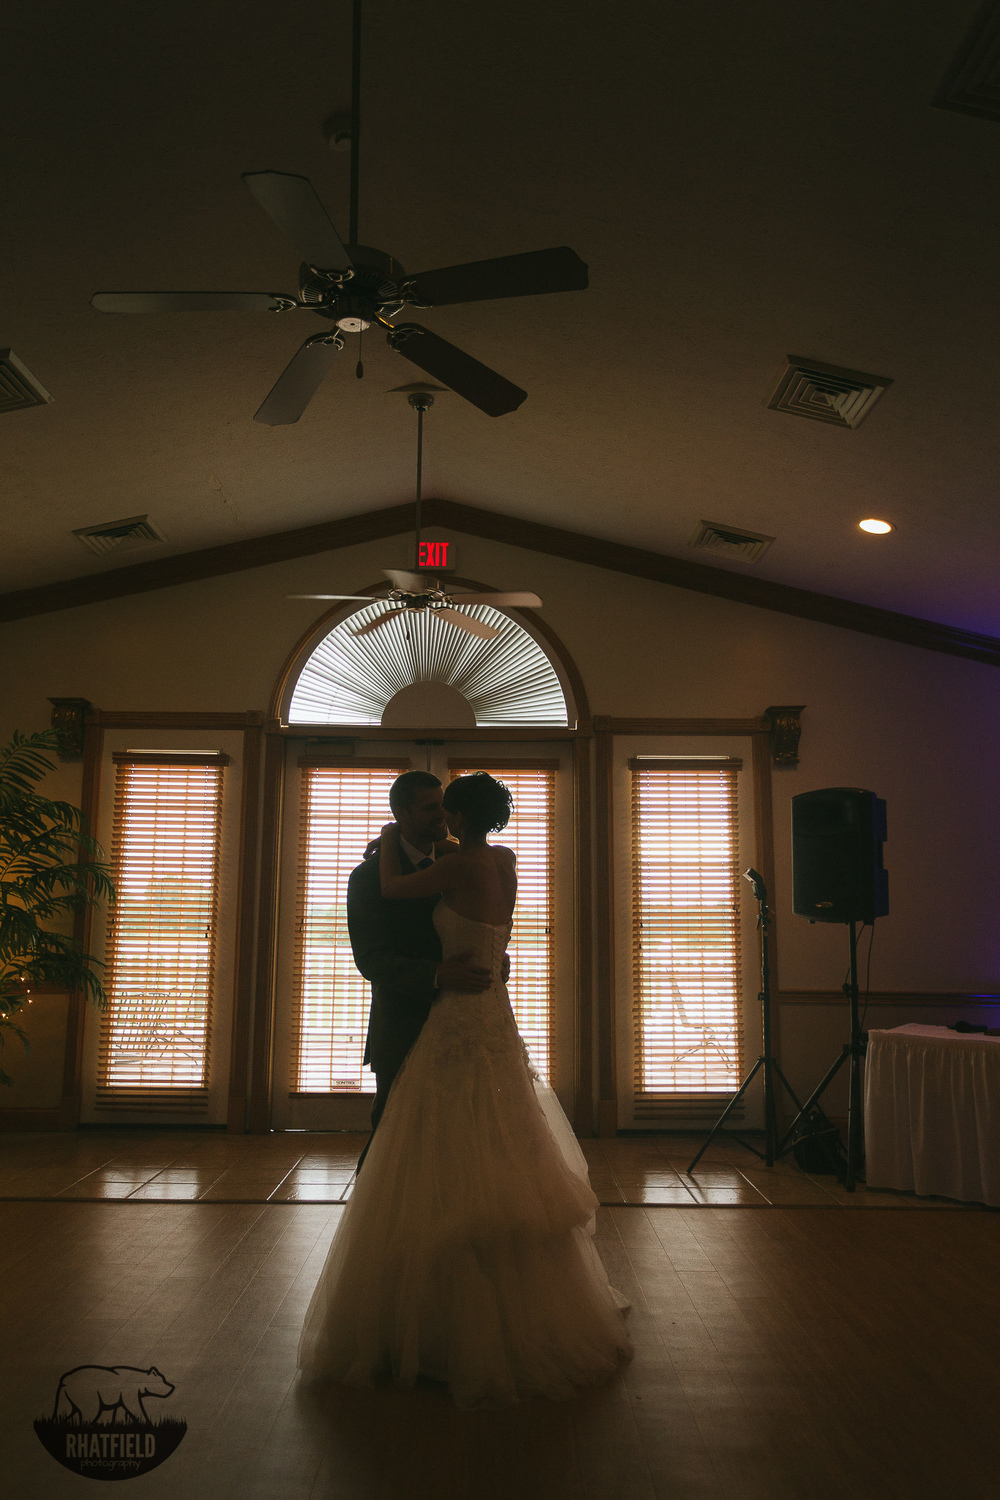 first-dance-silhouette-bay-window